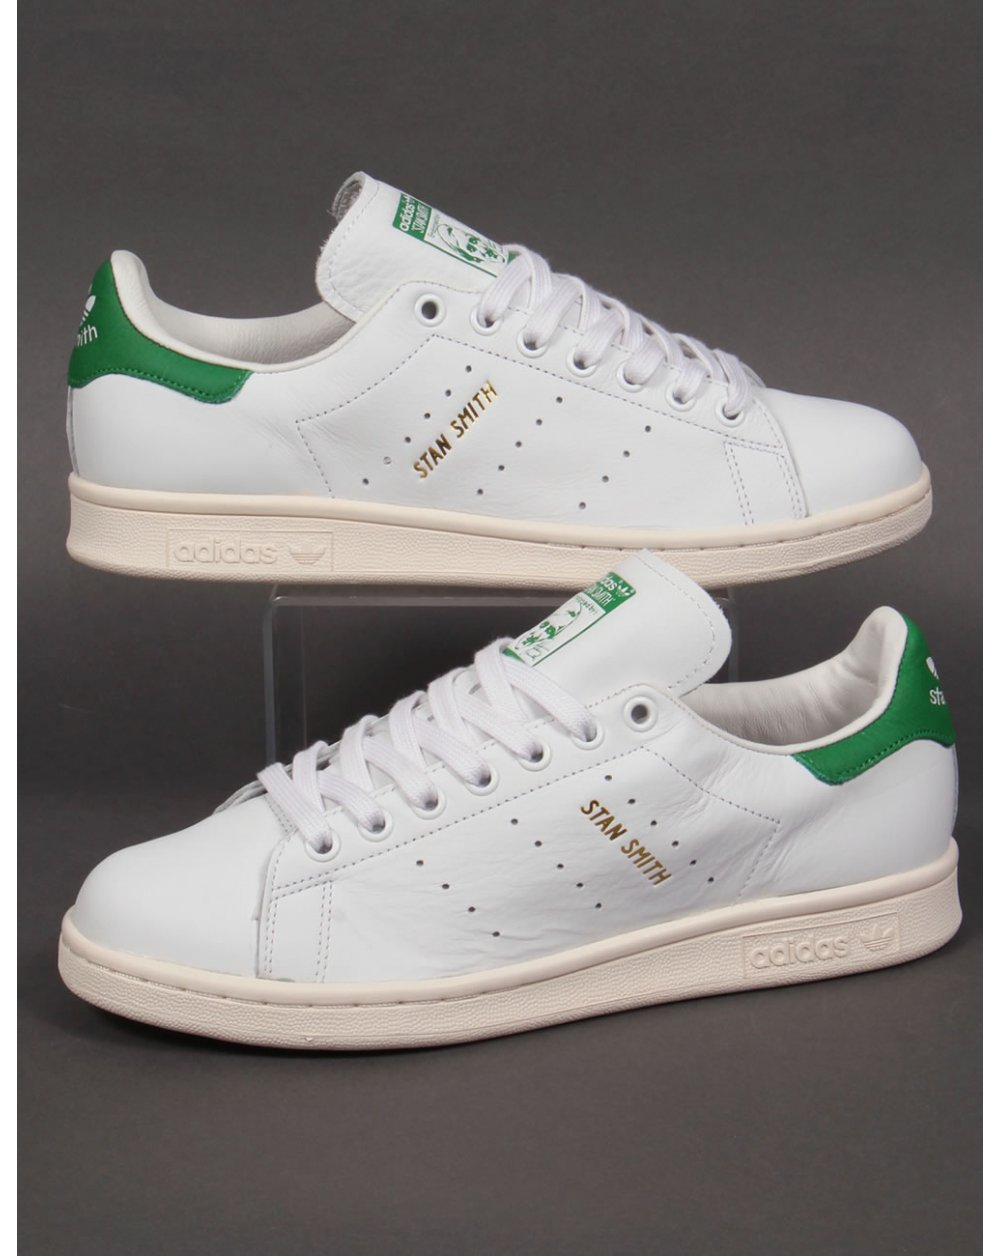 hot sale online 0e3ad 5e446 Adidas Stan Smith Trainers White/green/gold